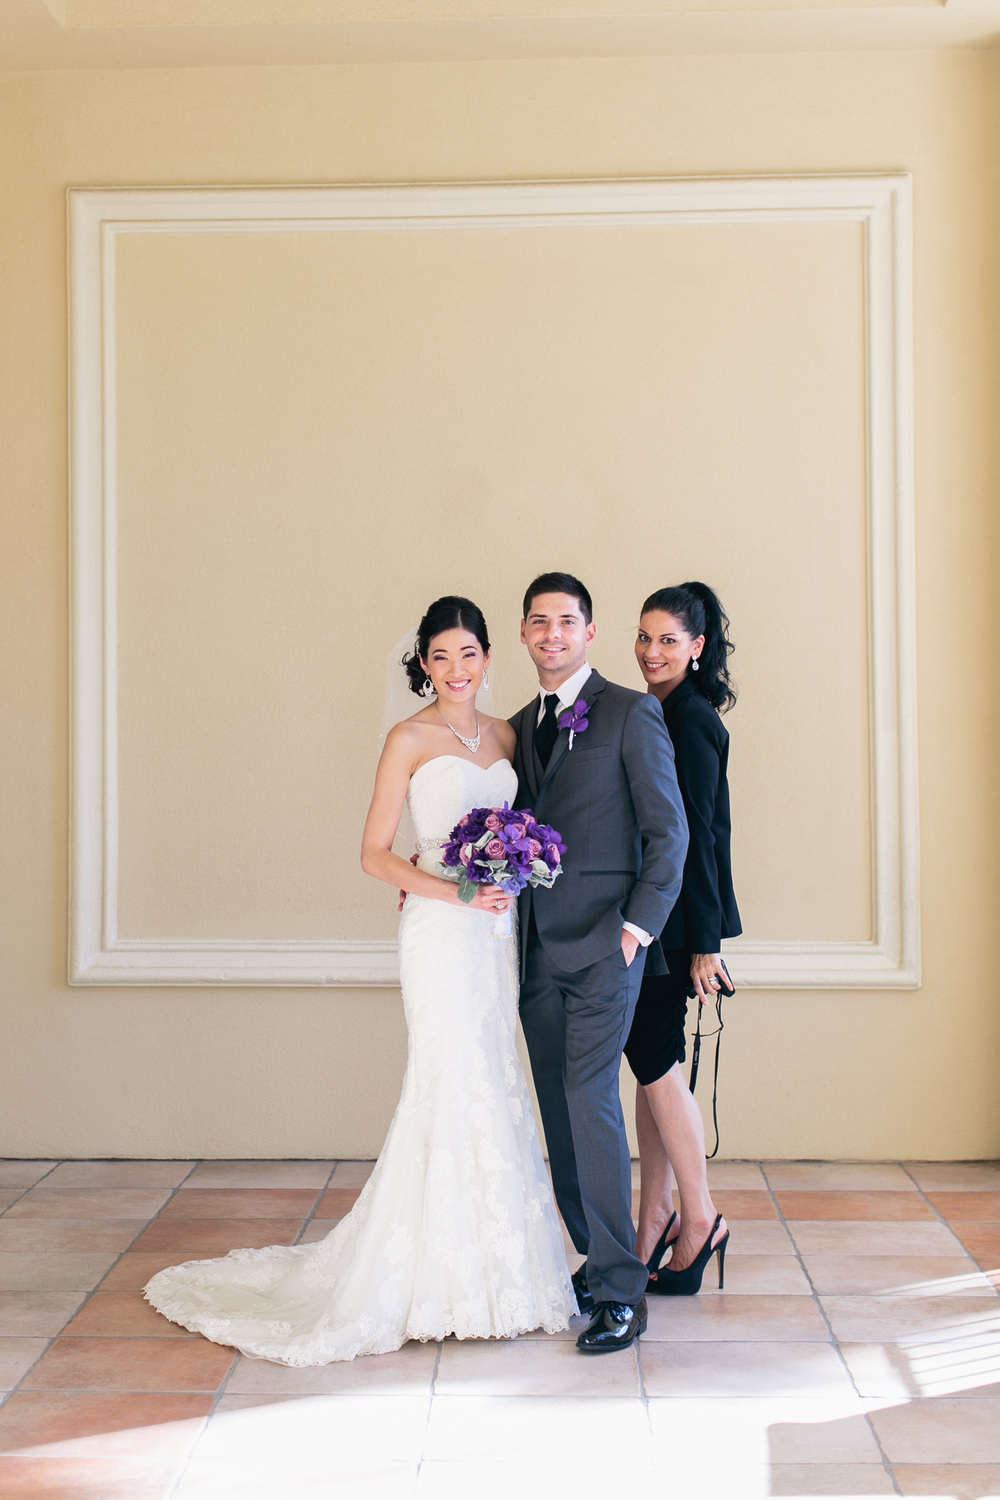 Las Vegas Wedding Planner Andrea Eppolito with Katherine and Jared at their Wedding at the Four Seasons Las Vegas.  Photo by MegRuth.com.